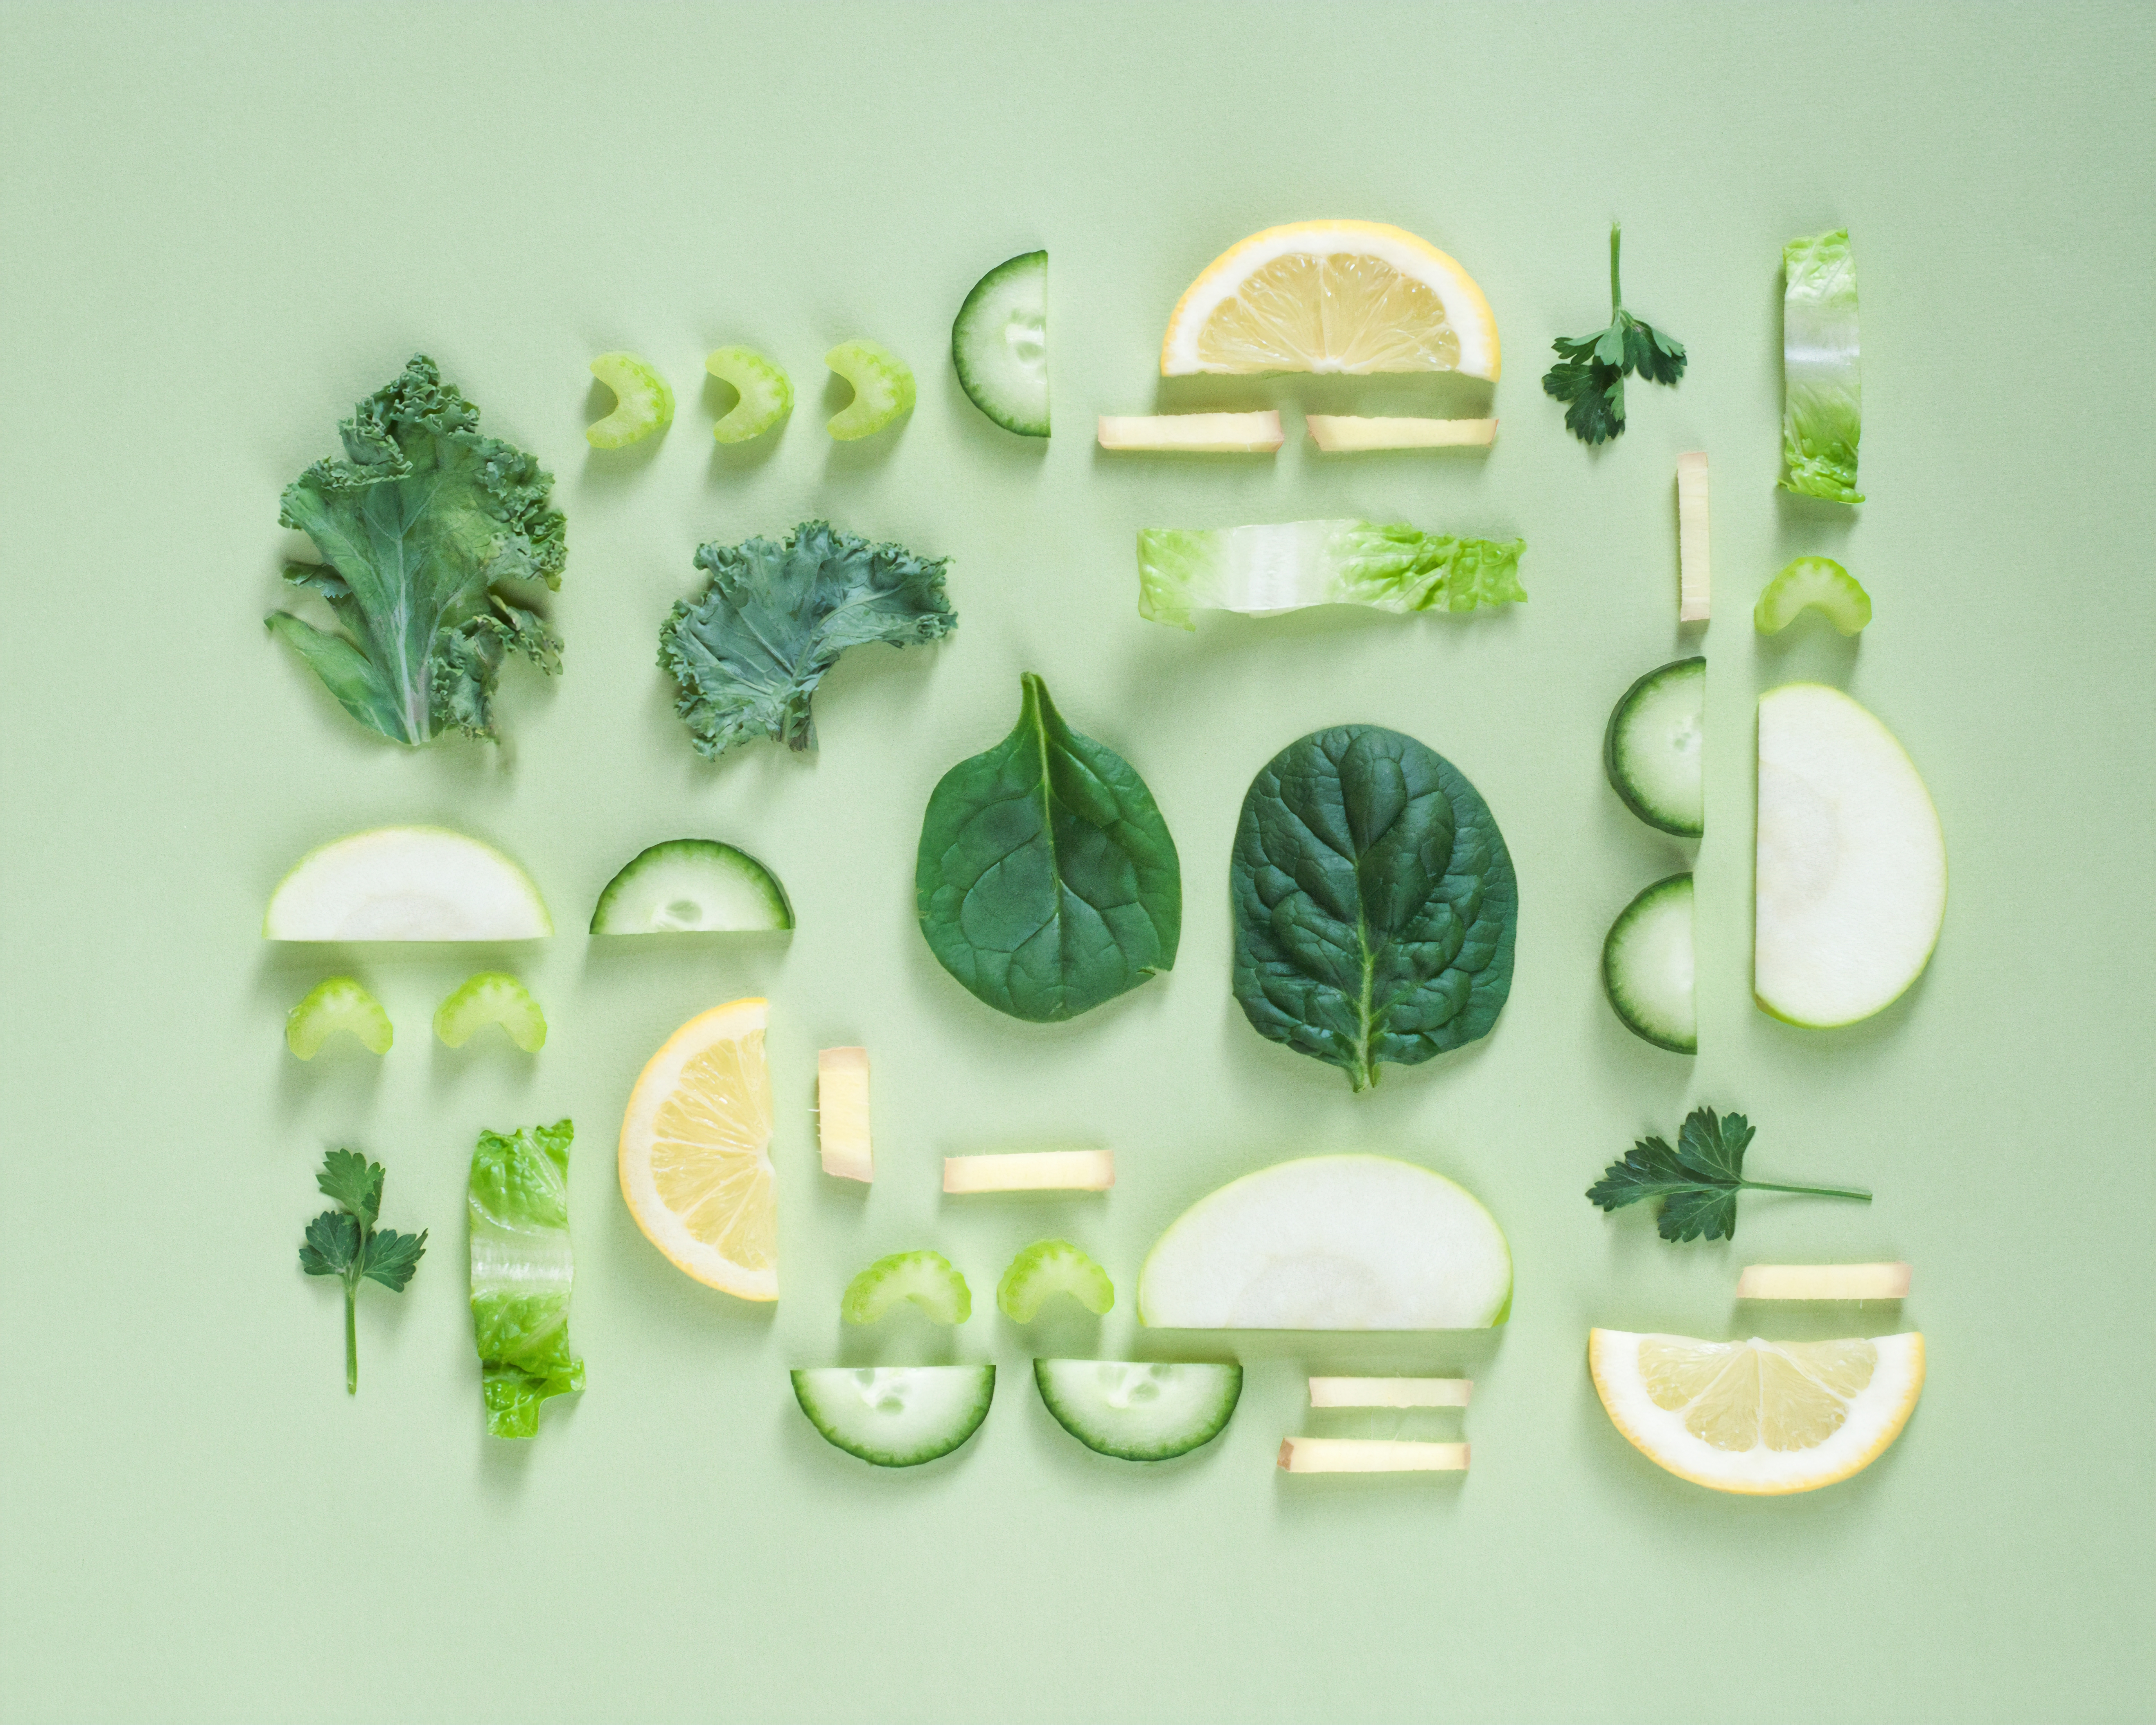 5 Fruits & Veggies a Day for Mental Health